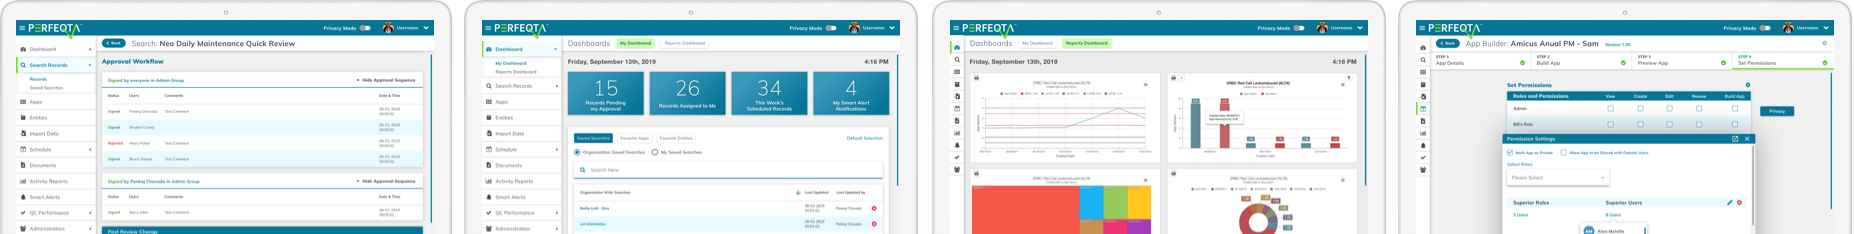 PERFEQTA business management software